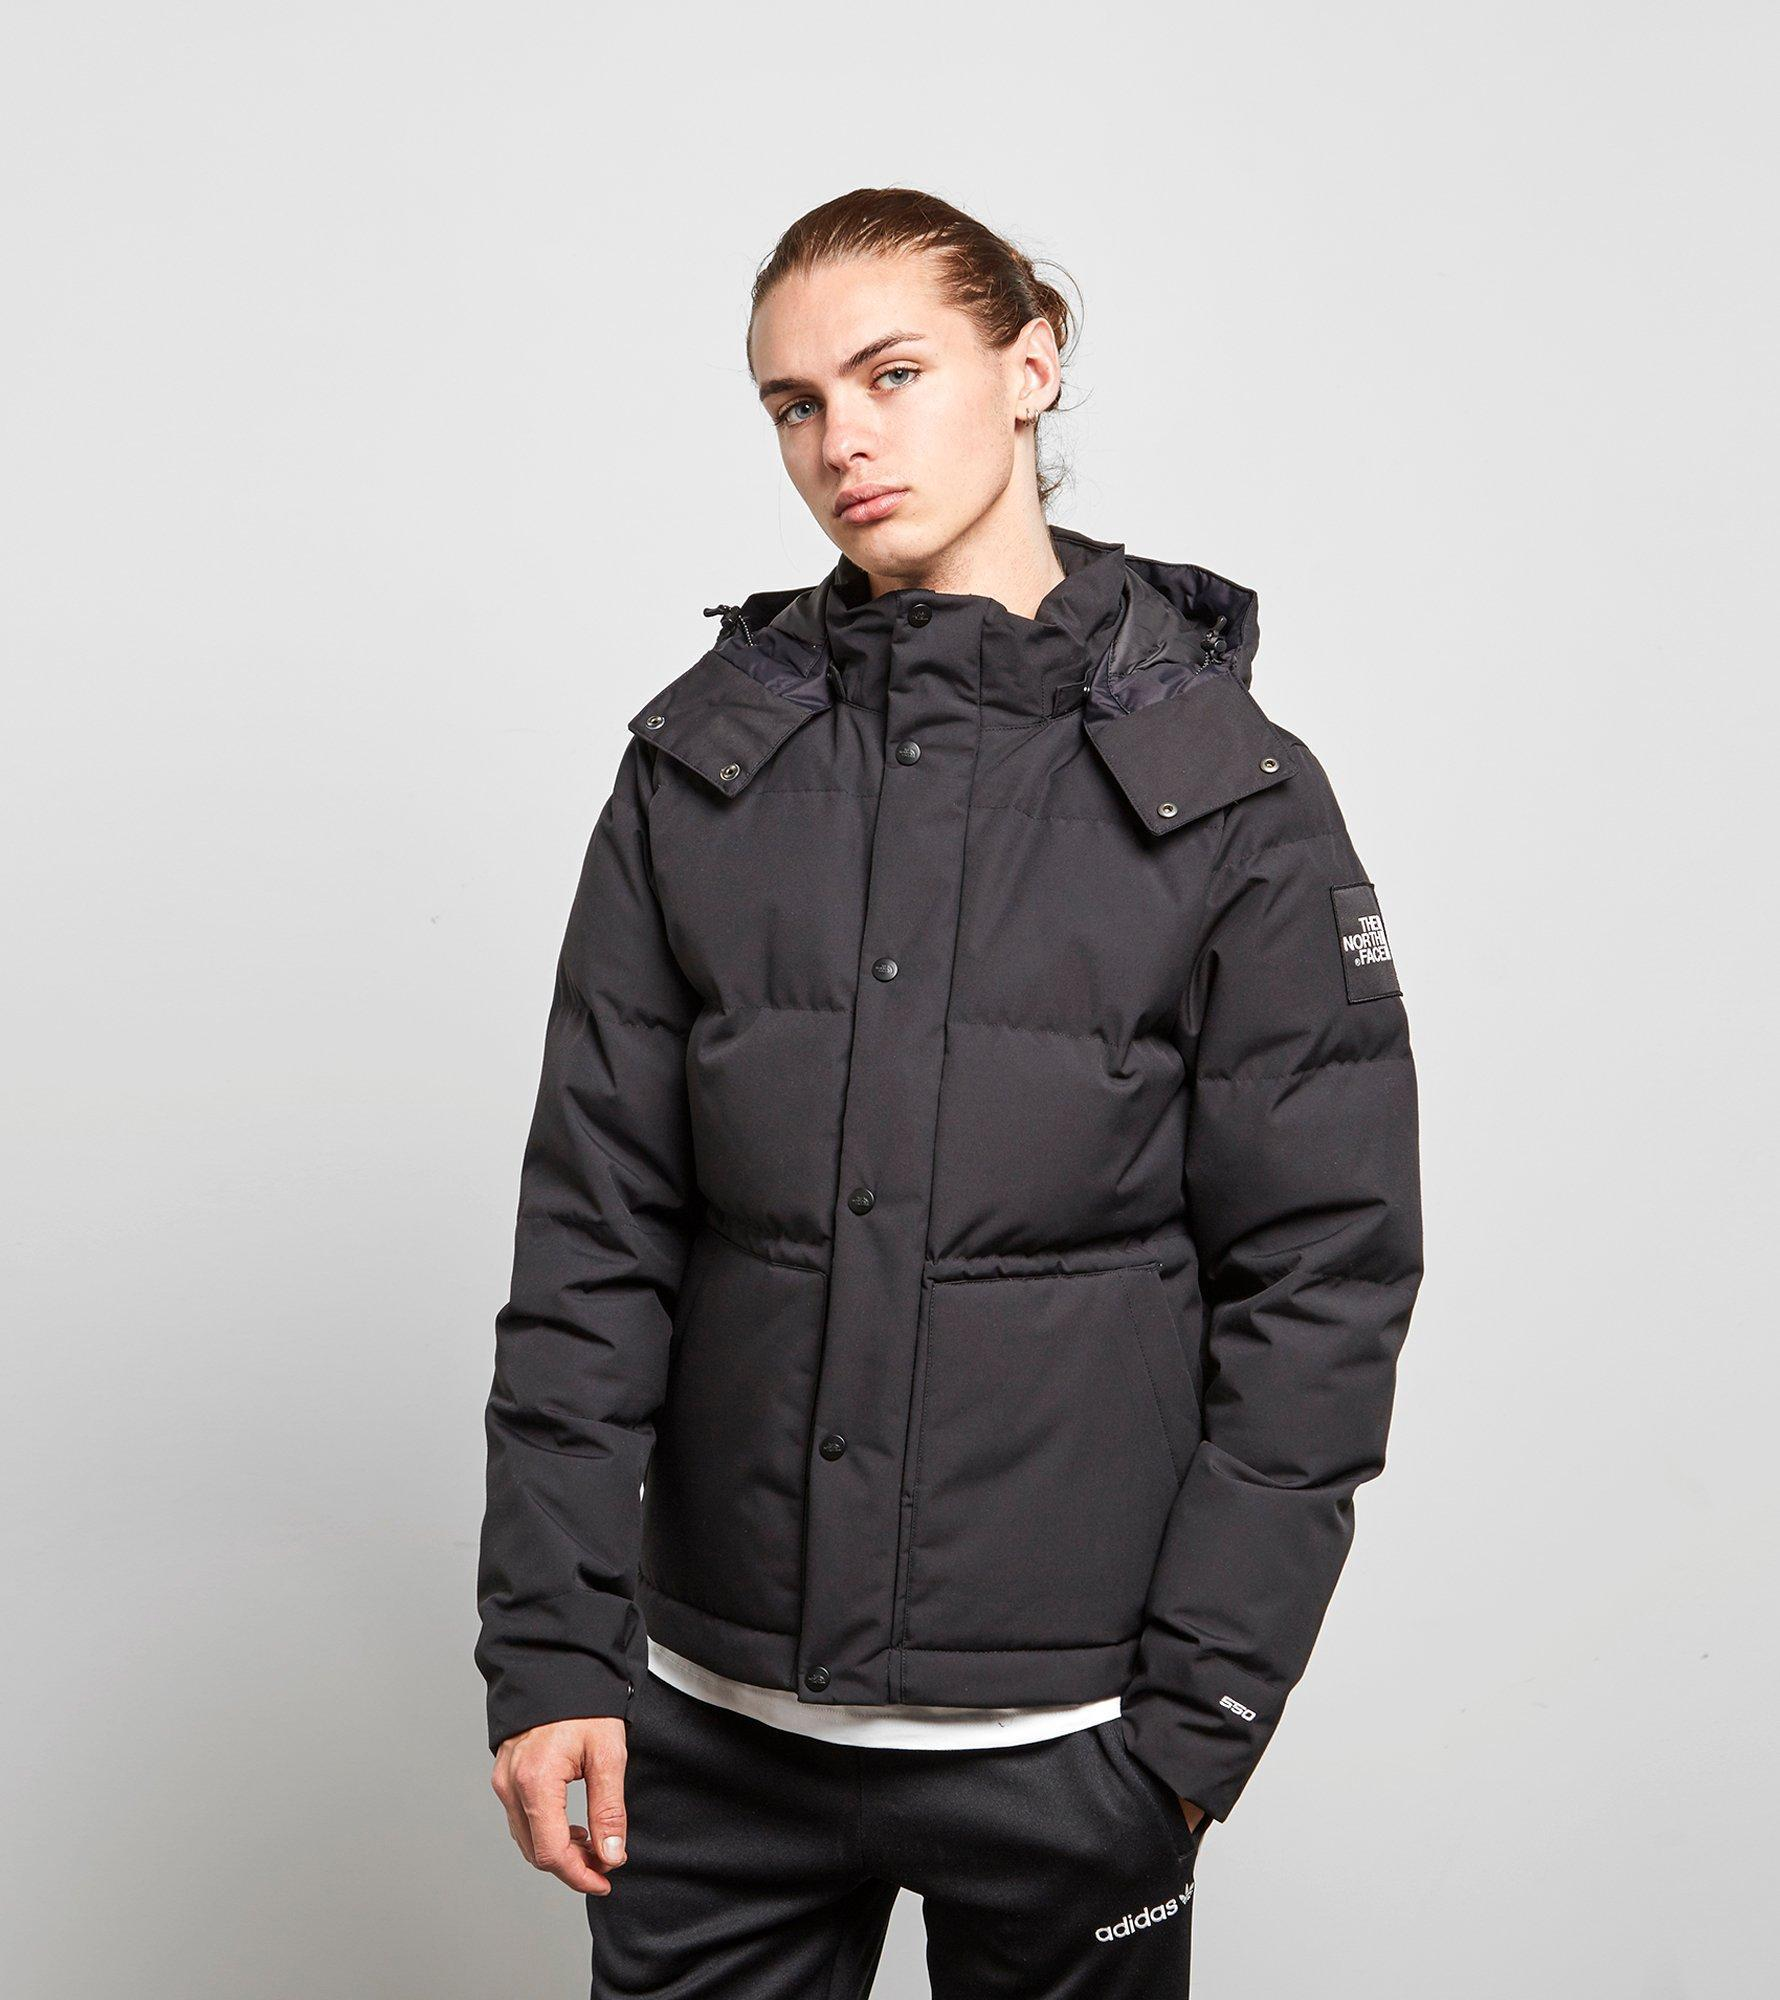 lyst the north face box canyon black label jacket in